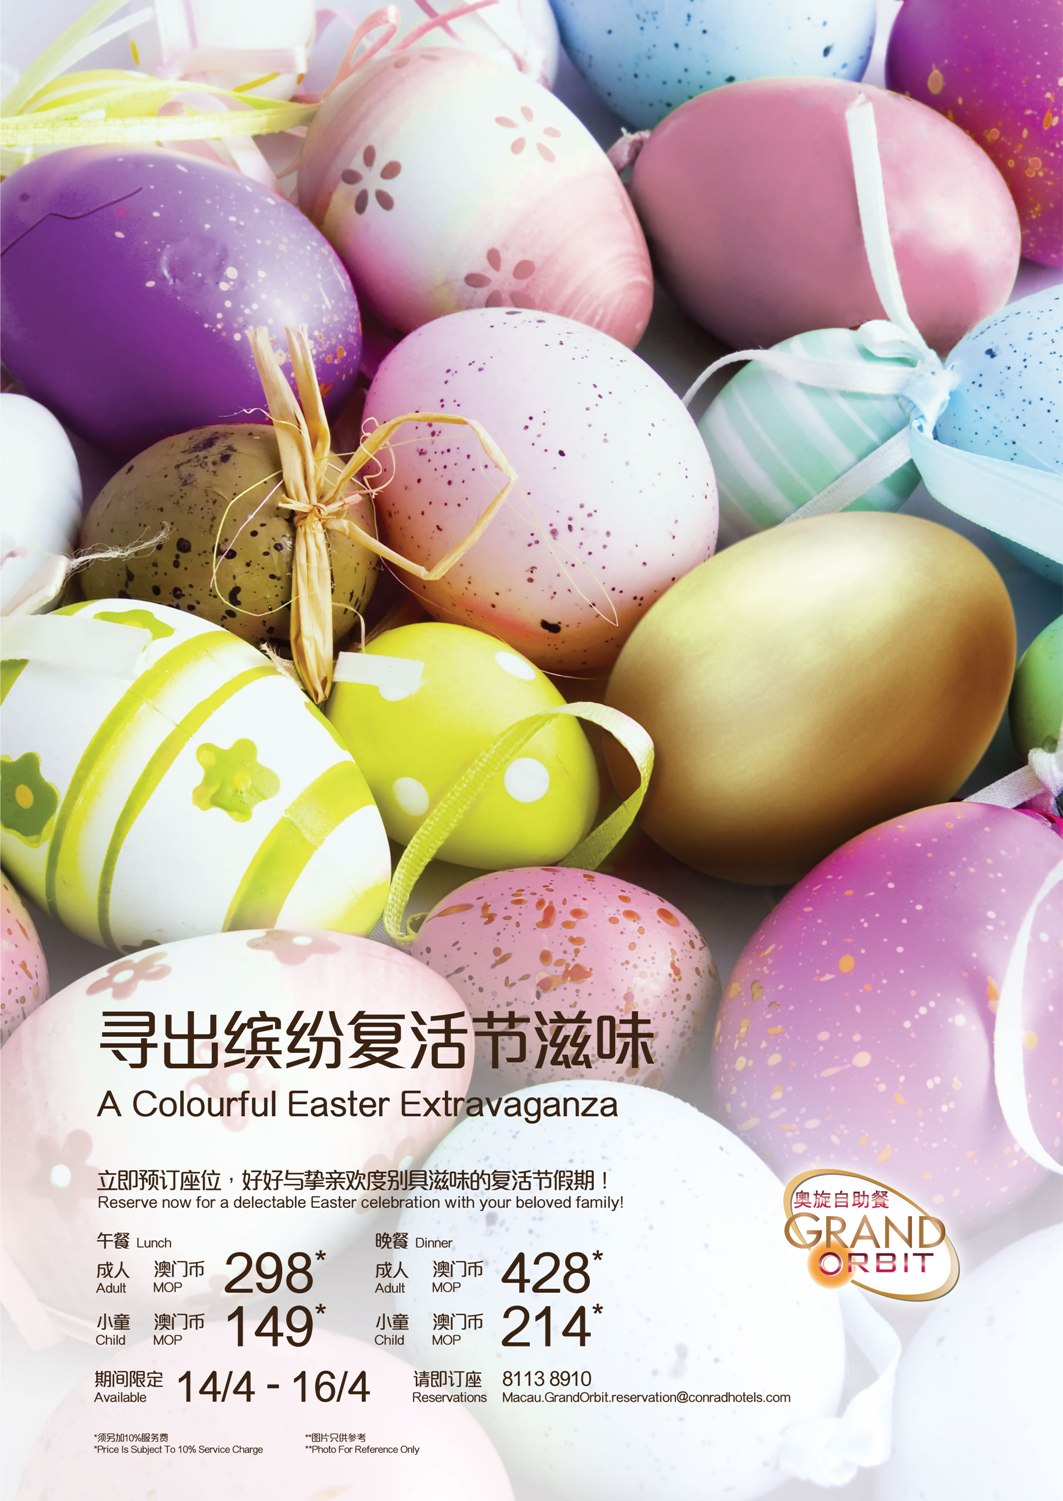 Celebrate_Easter_with_a_magnificent_buffet_in_Grand_Orbit_at_Conrad_Macao